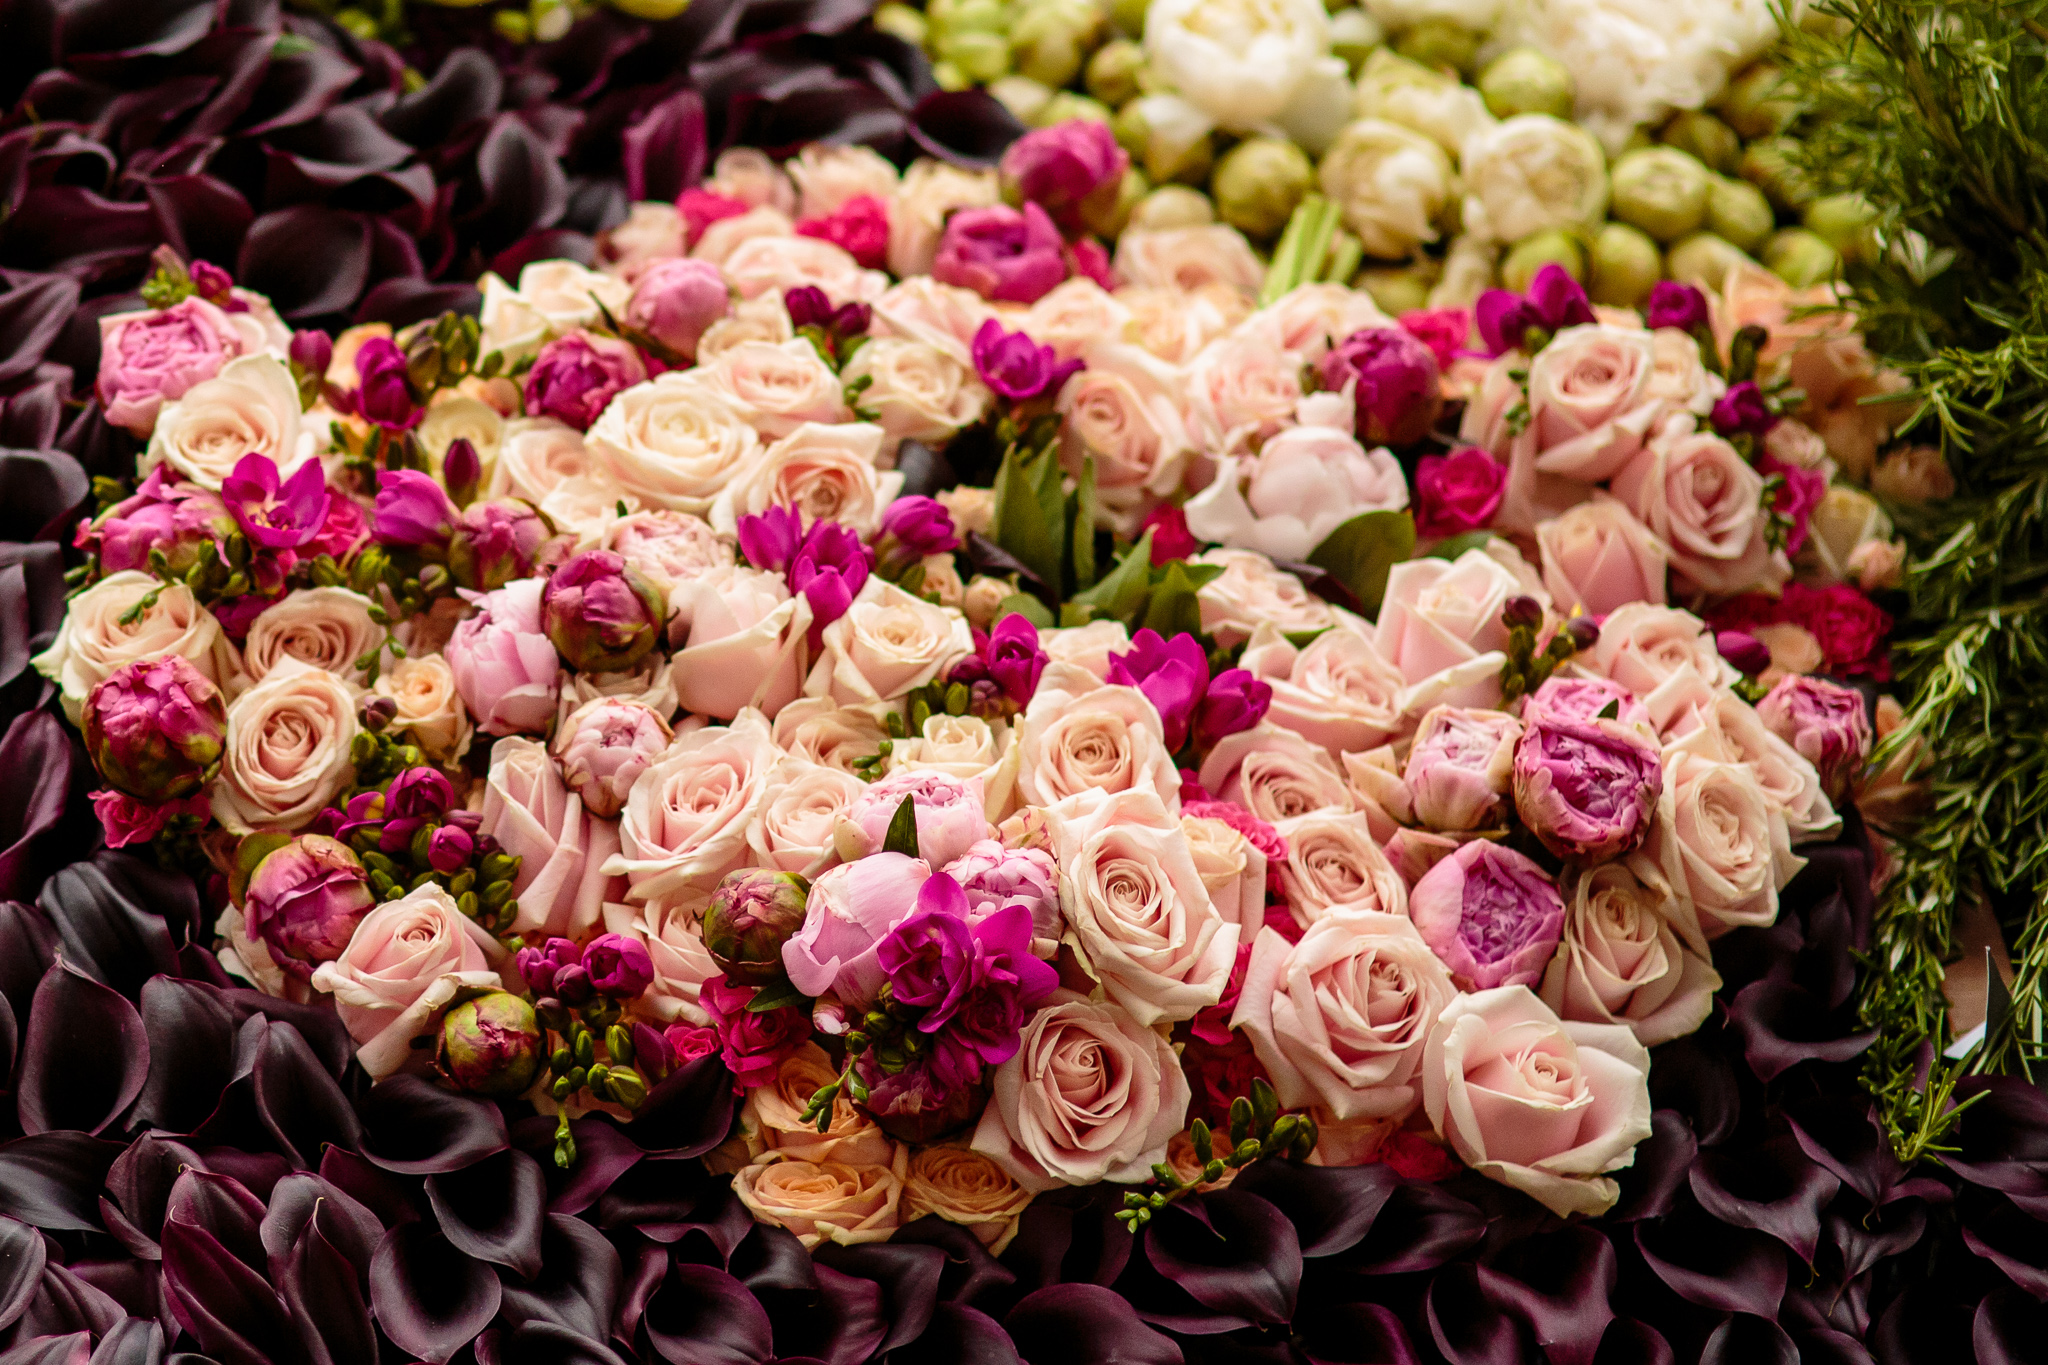 Close up of flowers used in the display